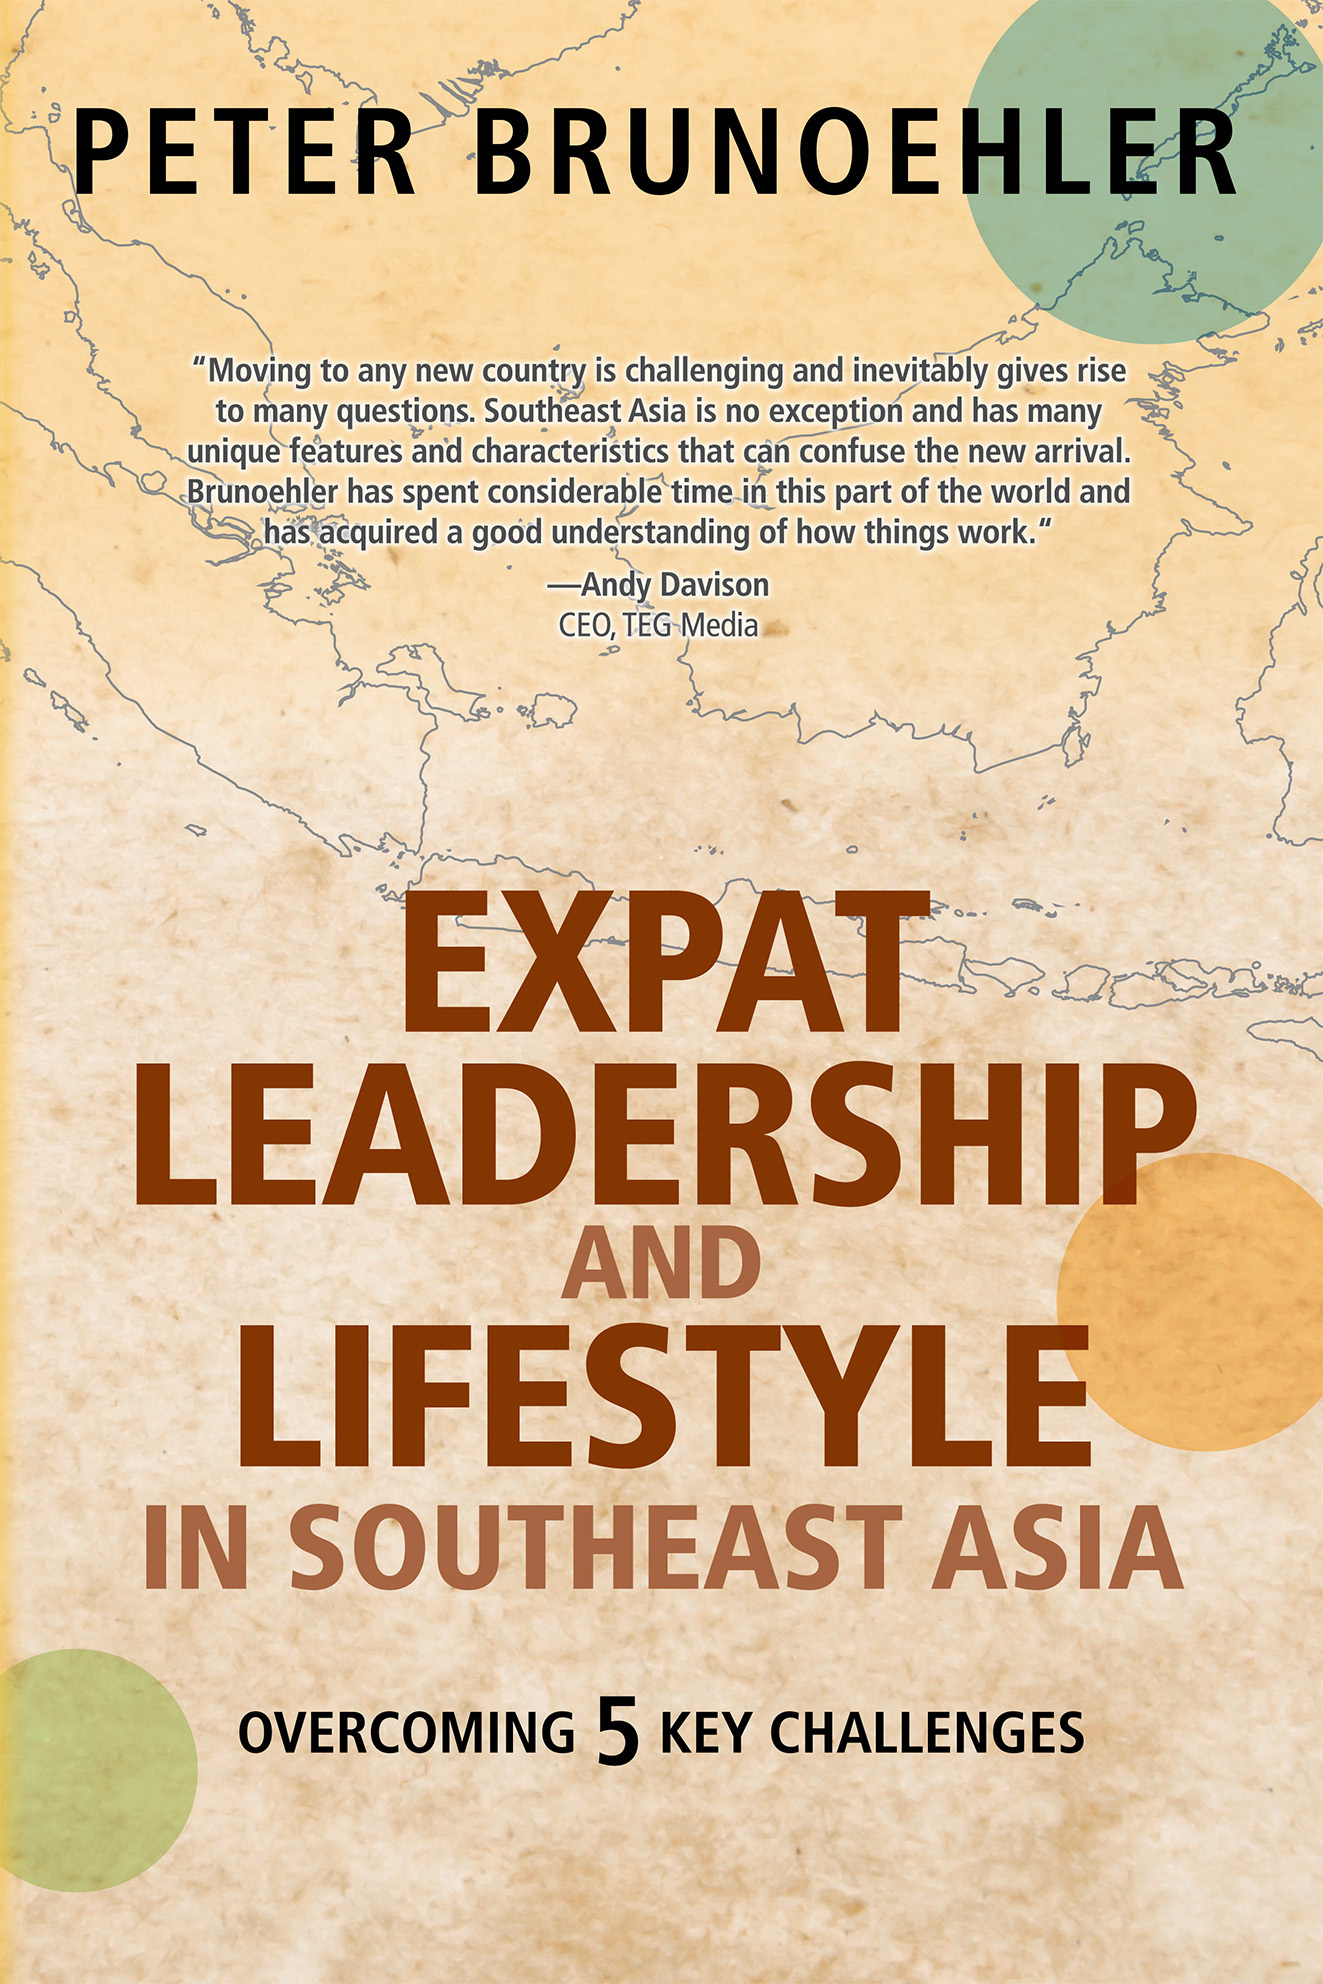 Expat Leadership and Lifestyle in Southeast Asia.jpg